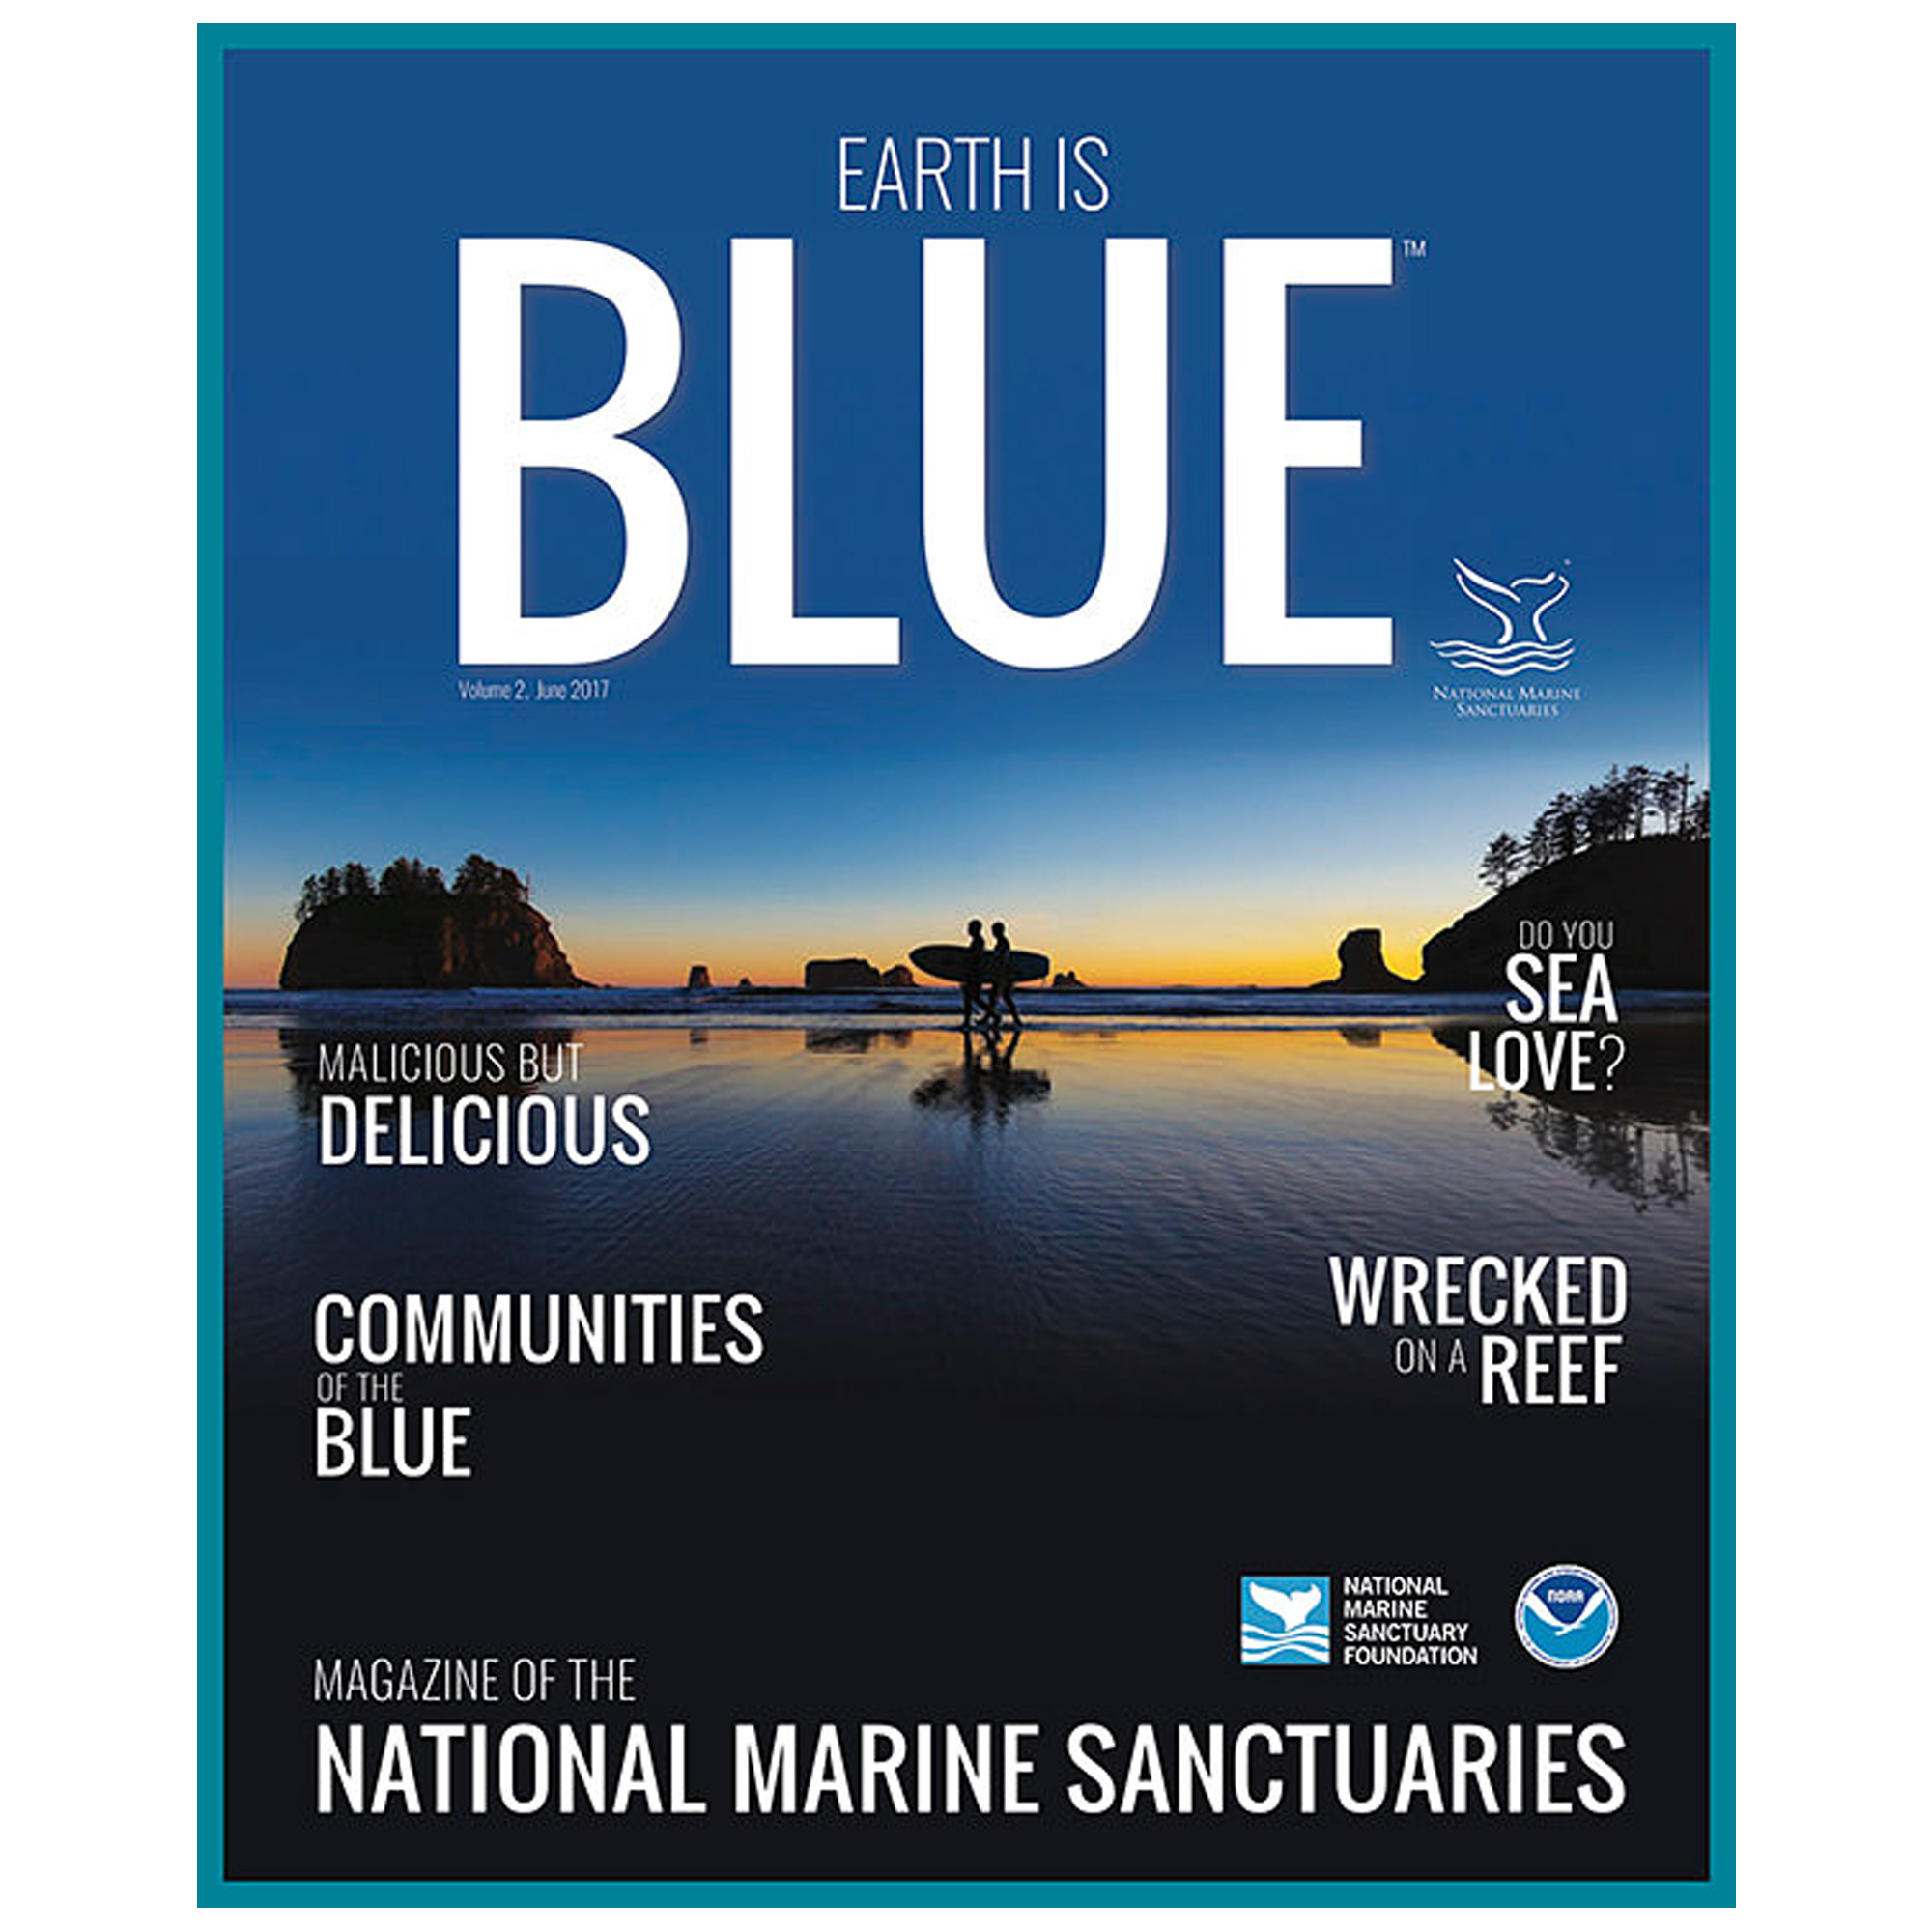 Danni-Washington-Science-Communicator-EARTH-IS-BLUE.jpg